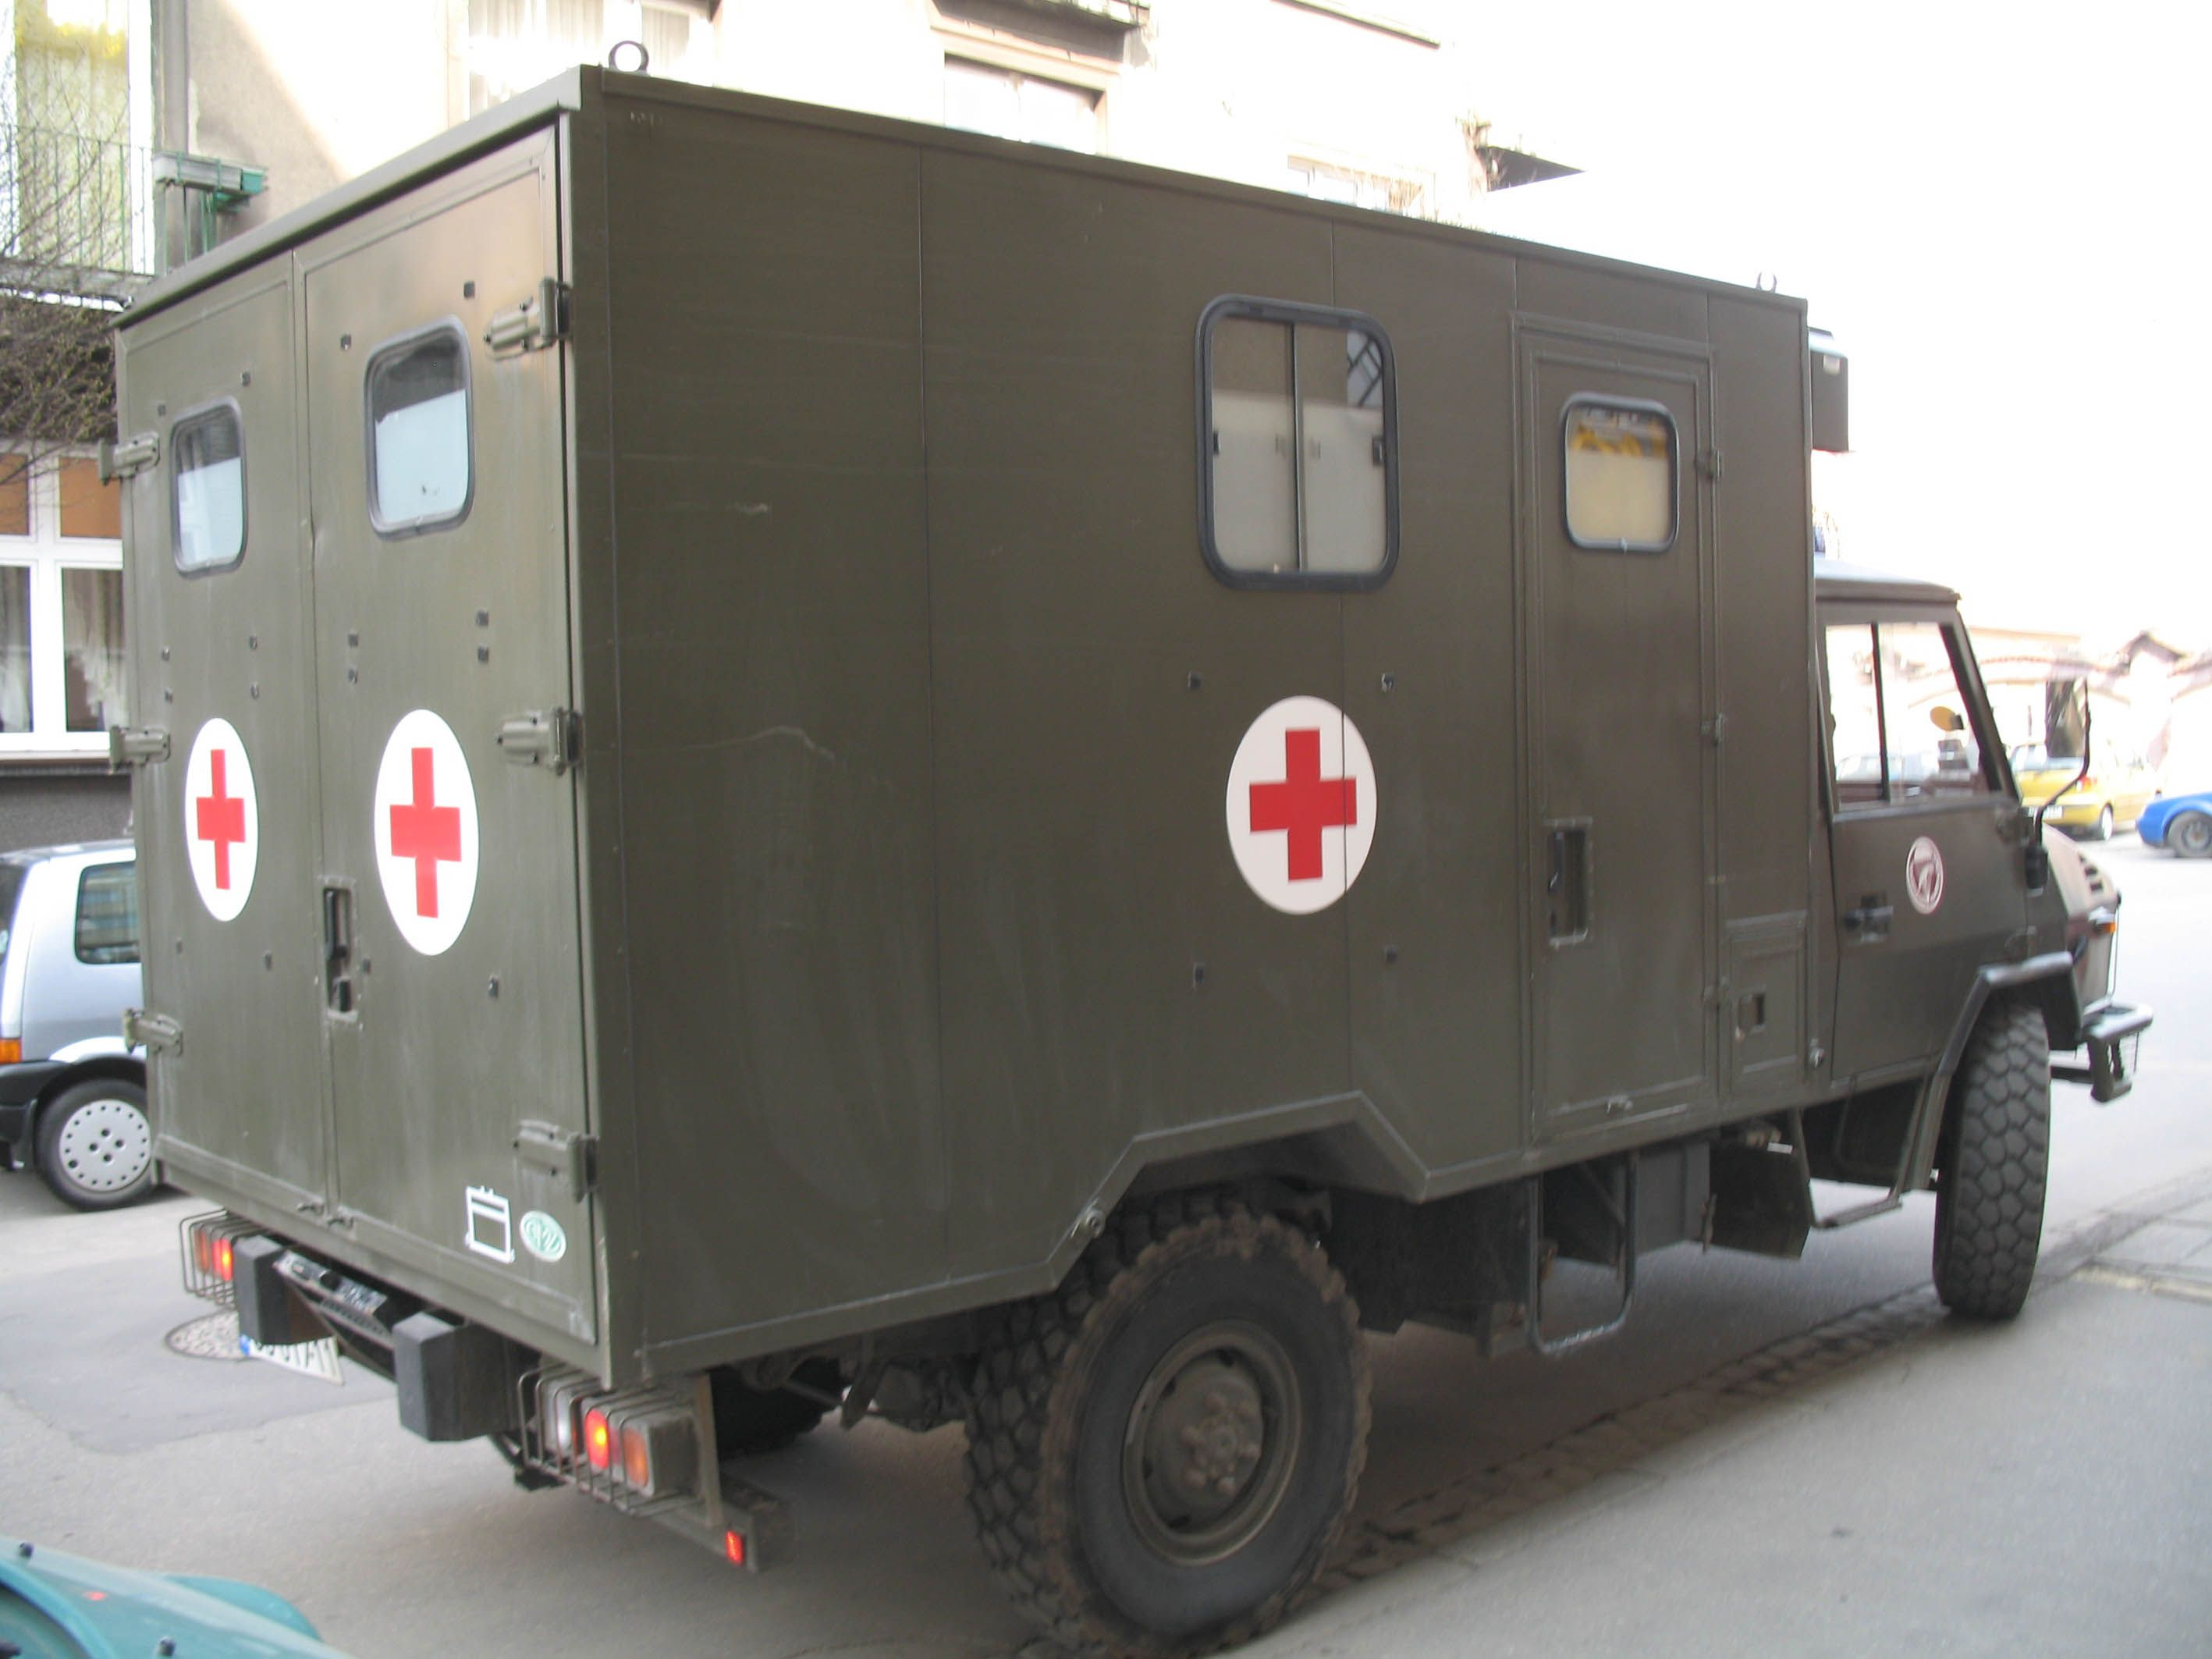 military iveco - Bing images